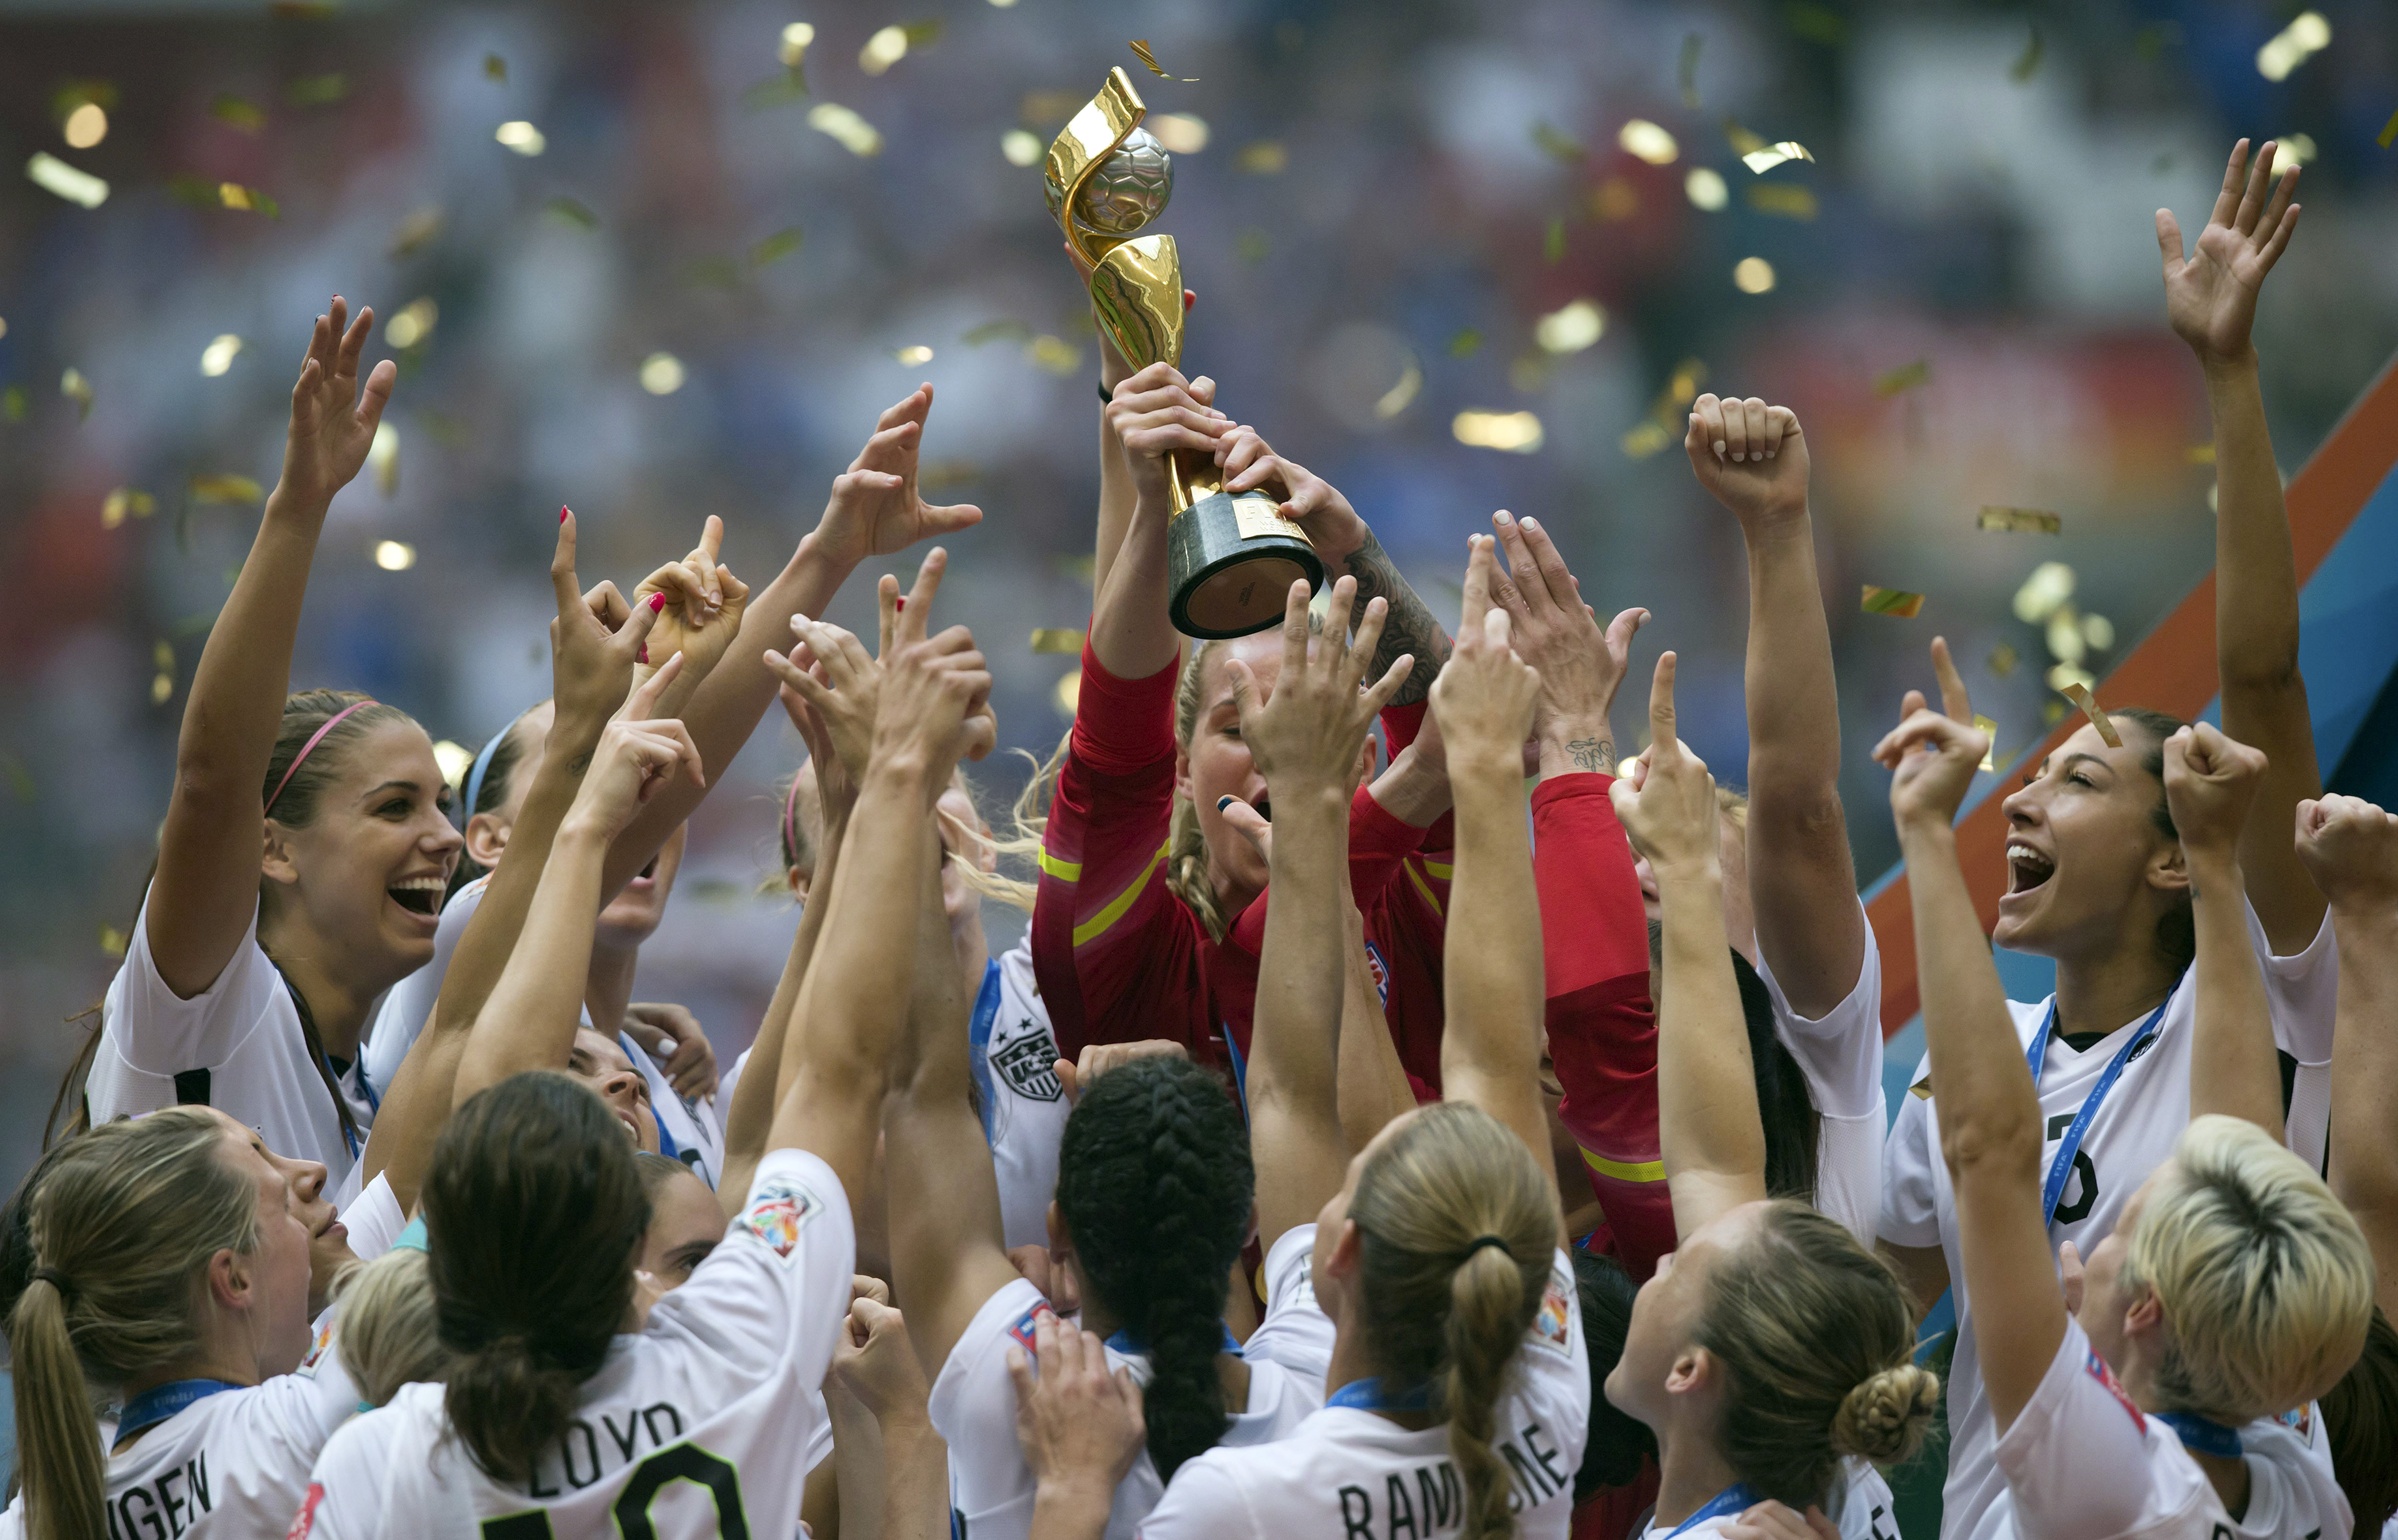 The U.S. Women's National Team celebrates with the trophy after they defeated Japan 5-2 in the FIFA Women's World Cup in Vancouver on July 5, 2015